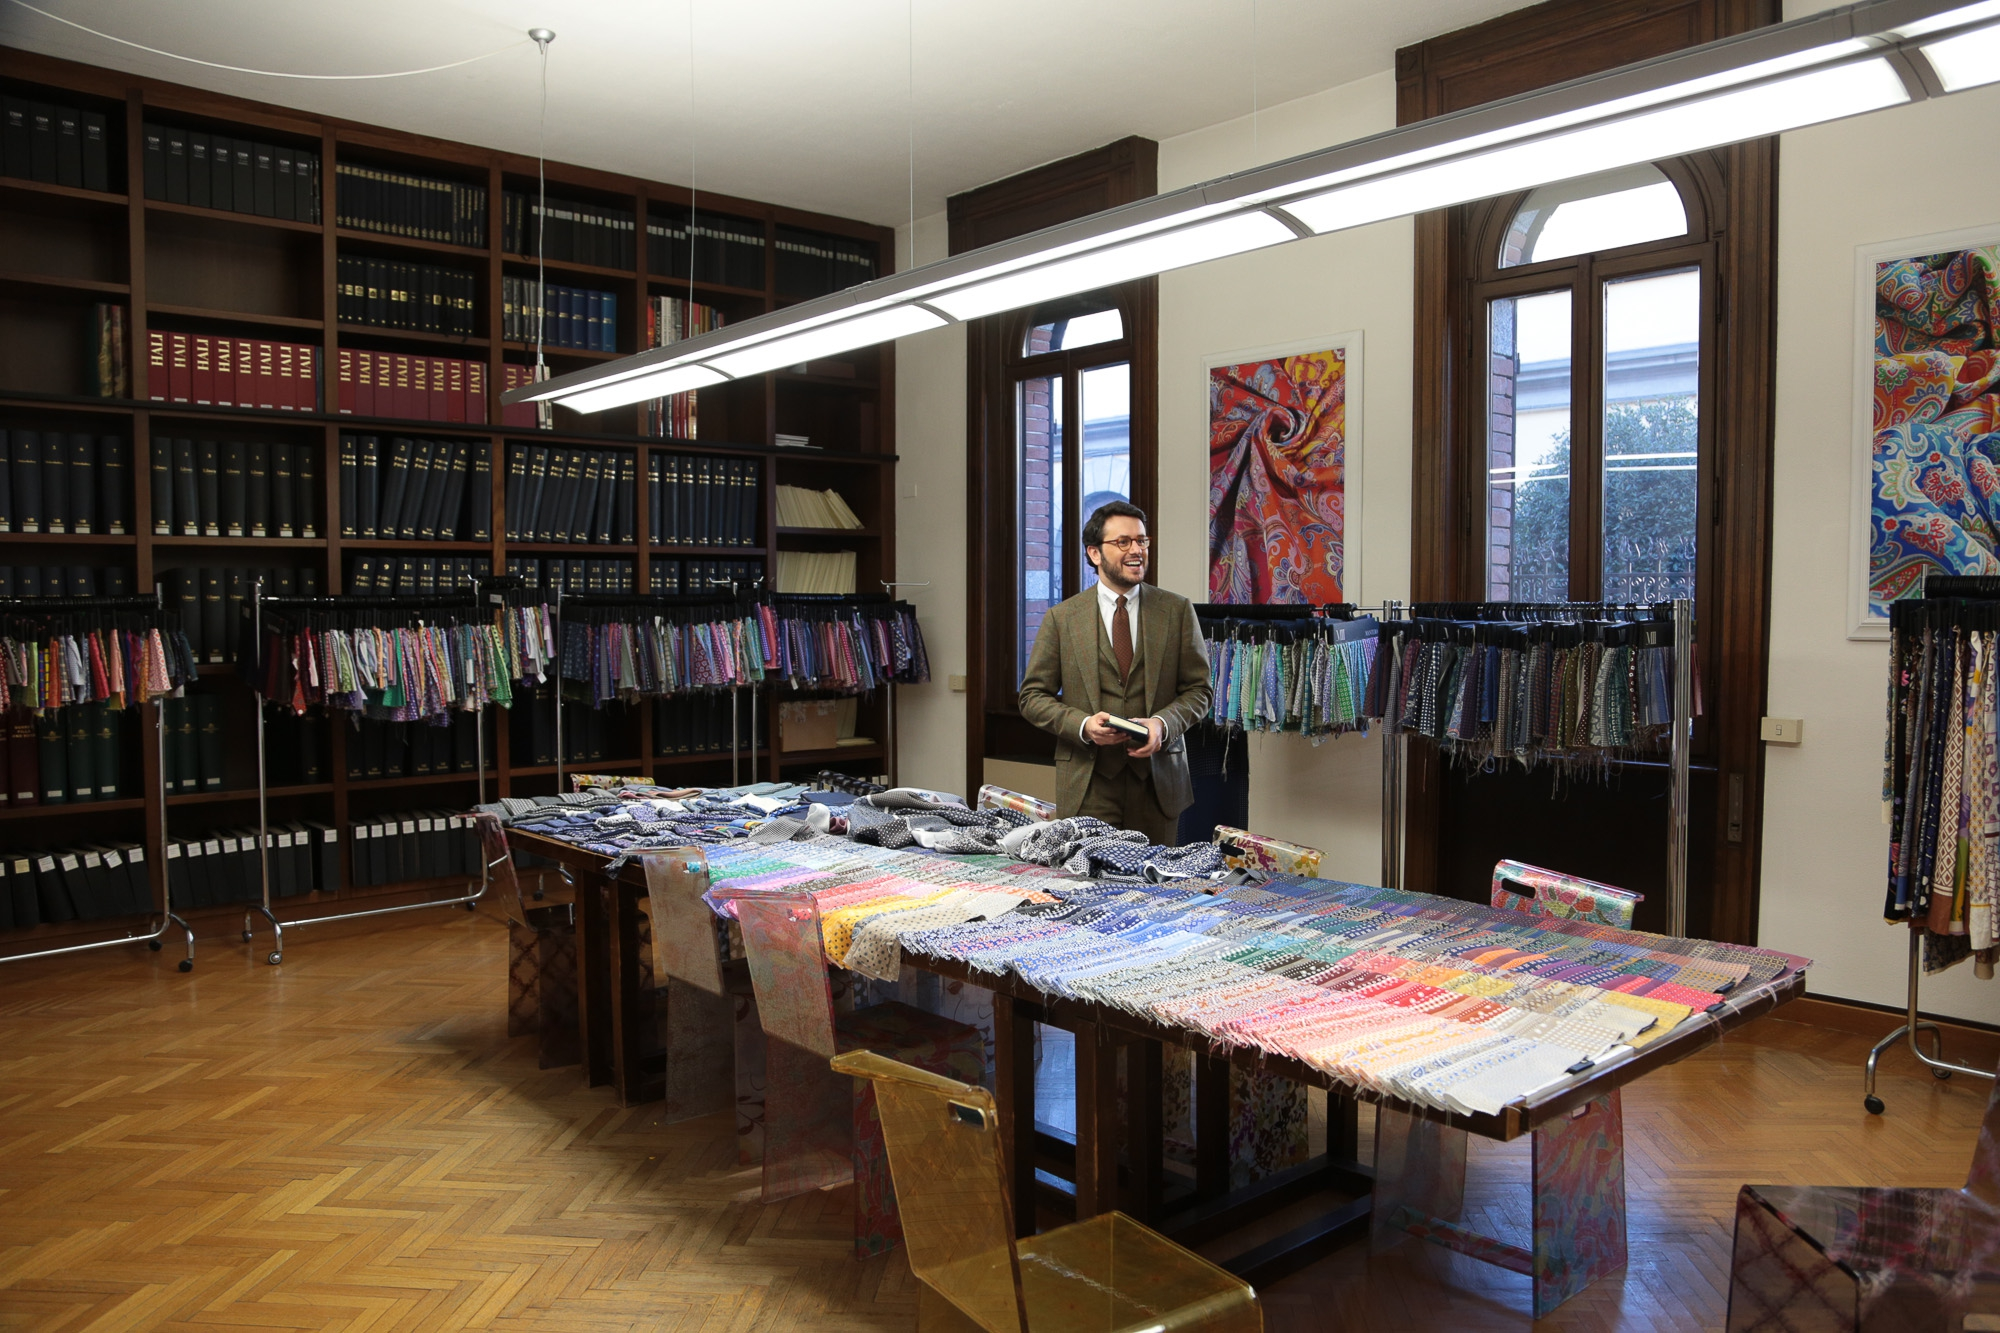 Mantero Seta: A visit to the samples archive The Headquarters of the company now have been moved from Como to Grandate